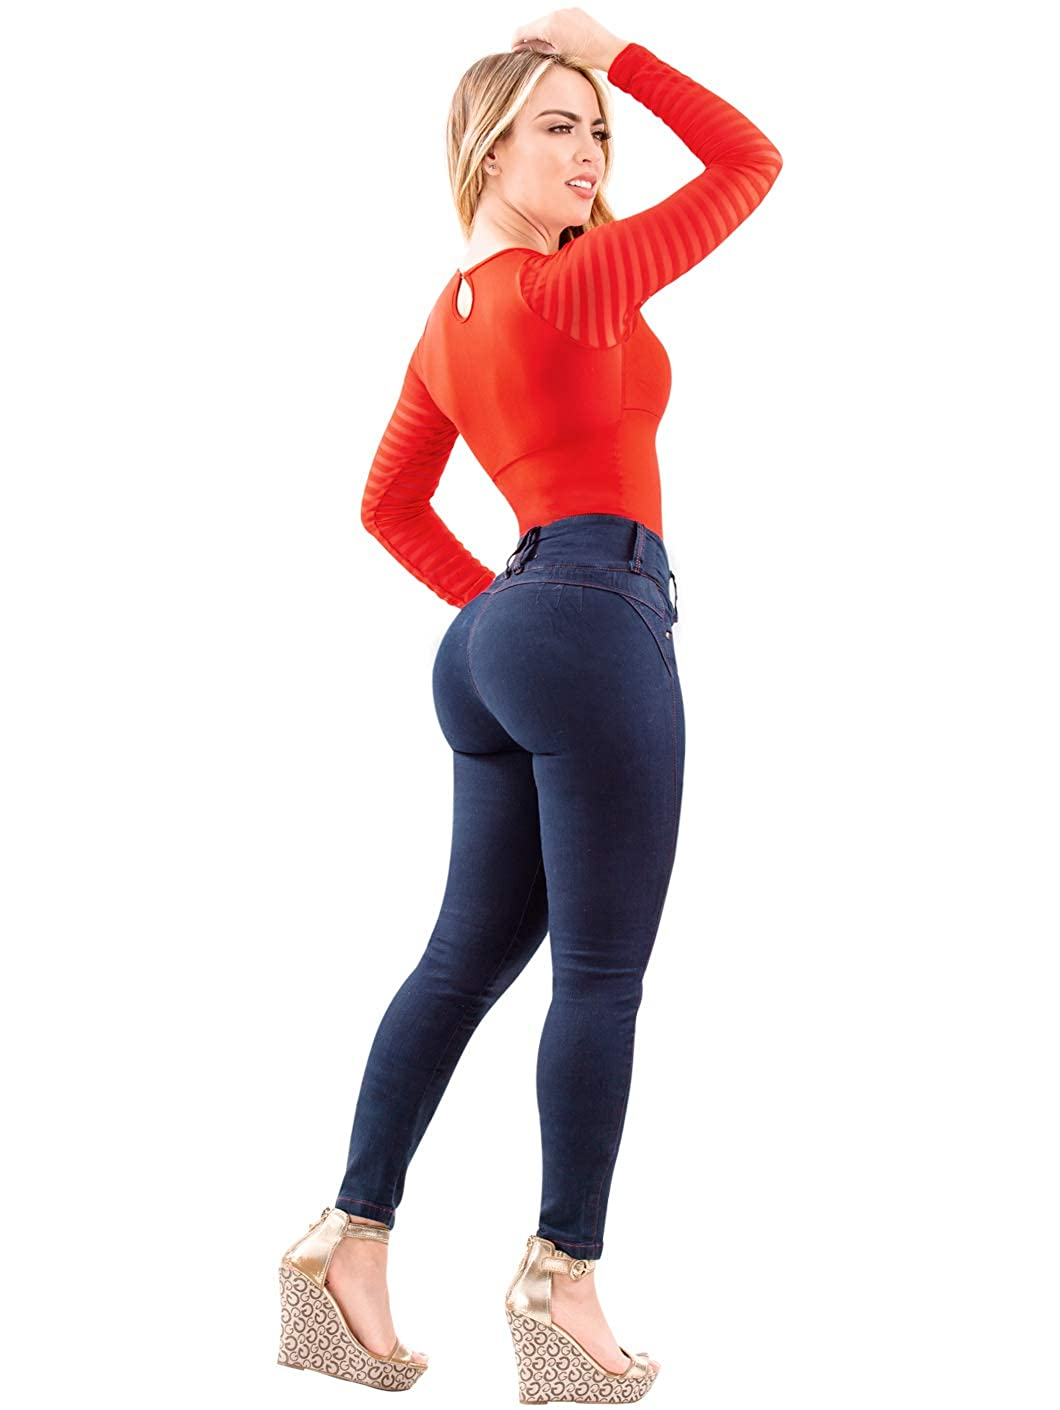 LATY ROSE 2017 JEANS COLOMBIANOS LEVANTA COLA BLUE DENIM BUTT LIFTER JEANS